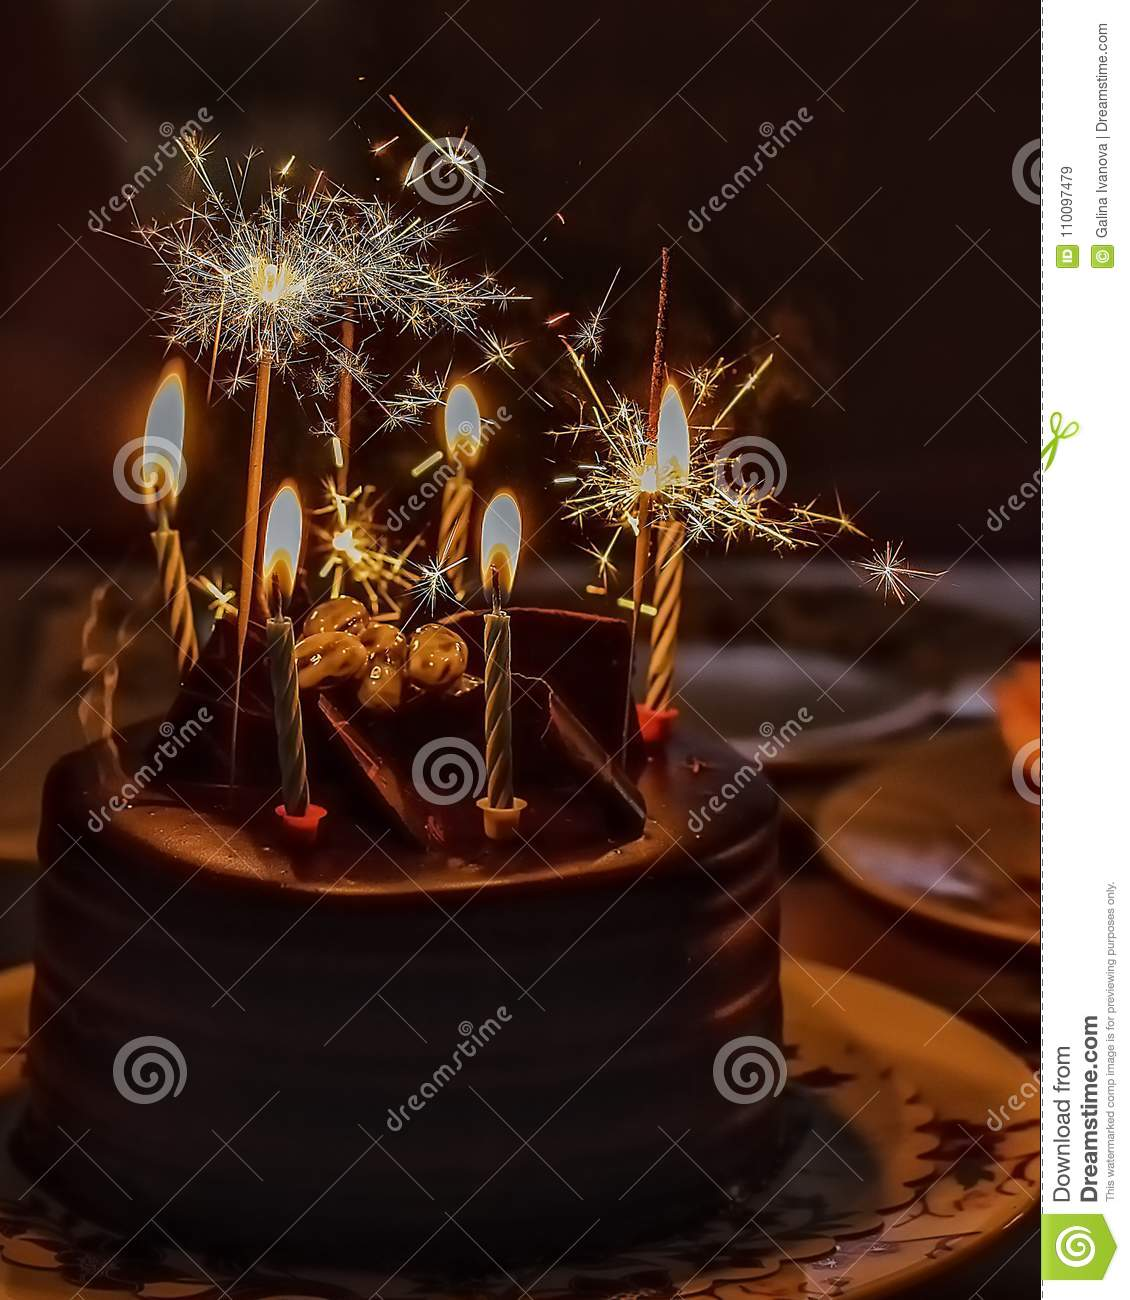 Chocolate Cake With Candles And Sparkling Light